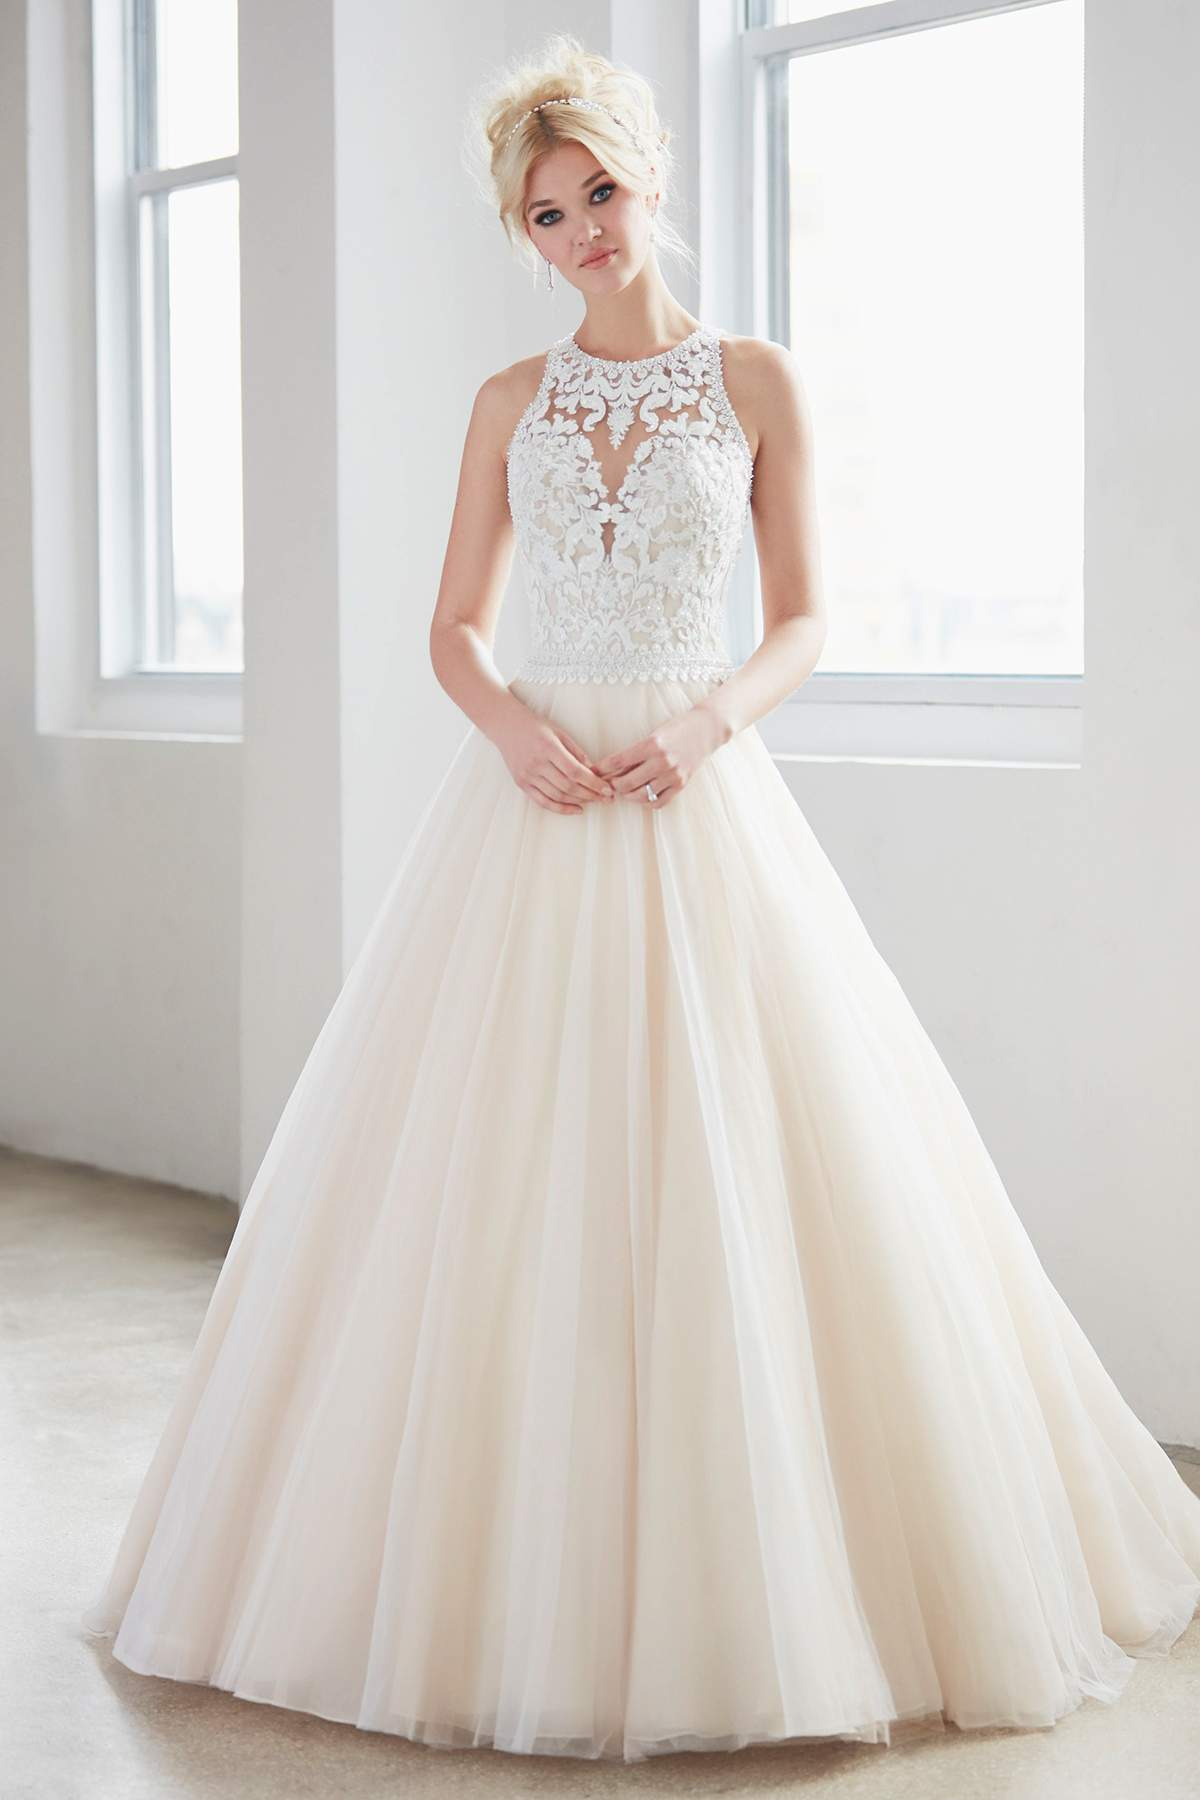 91a36c48548 Style MJ352 by Madison James - Find Your Dream Dress